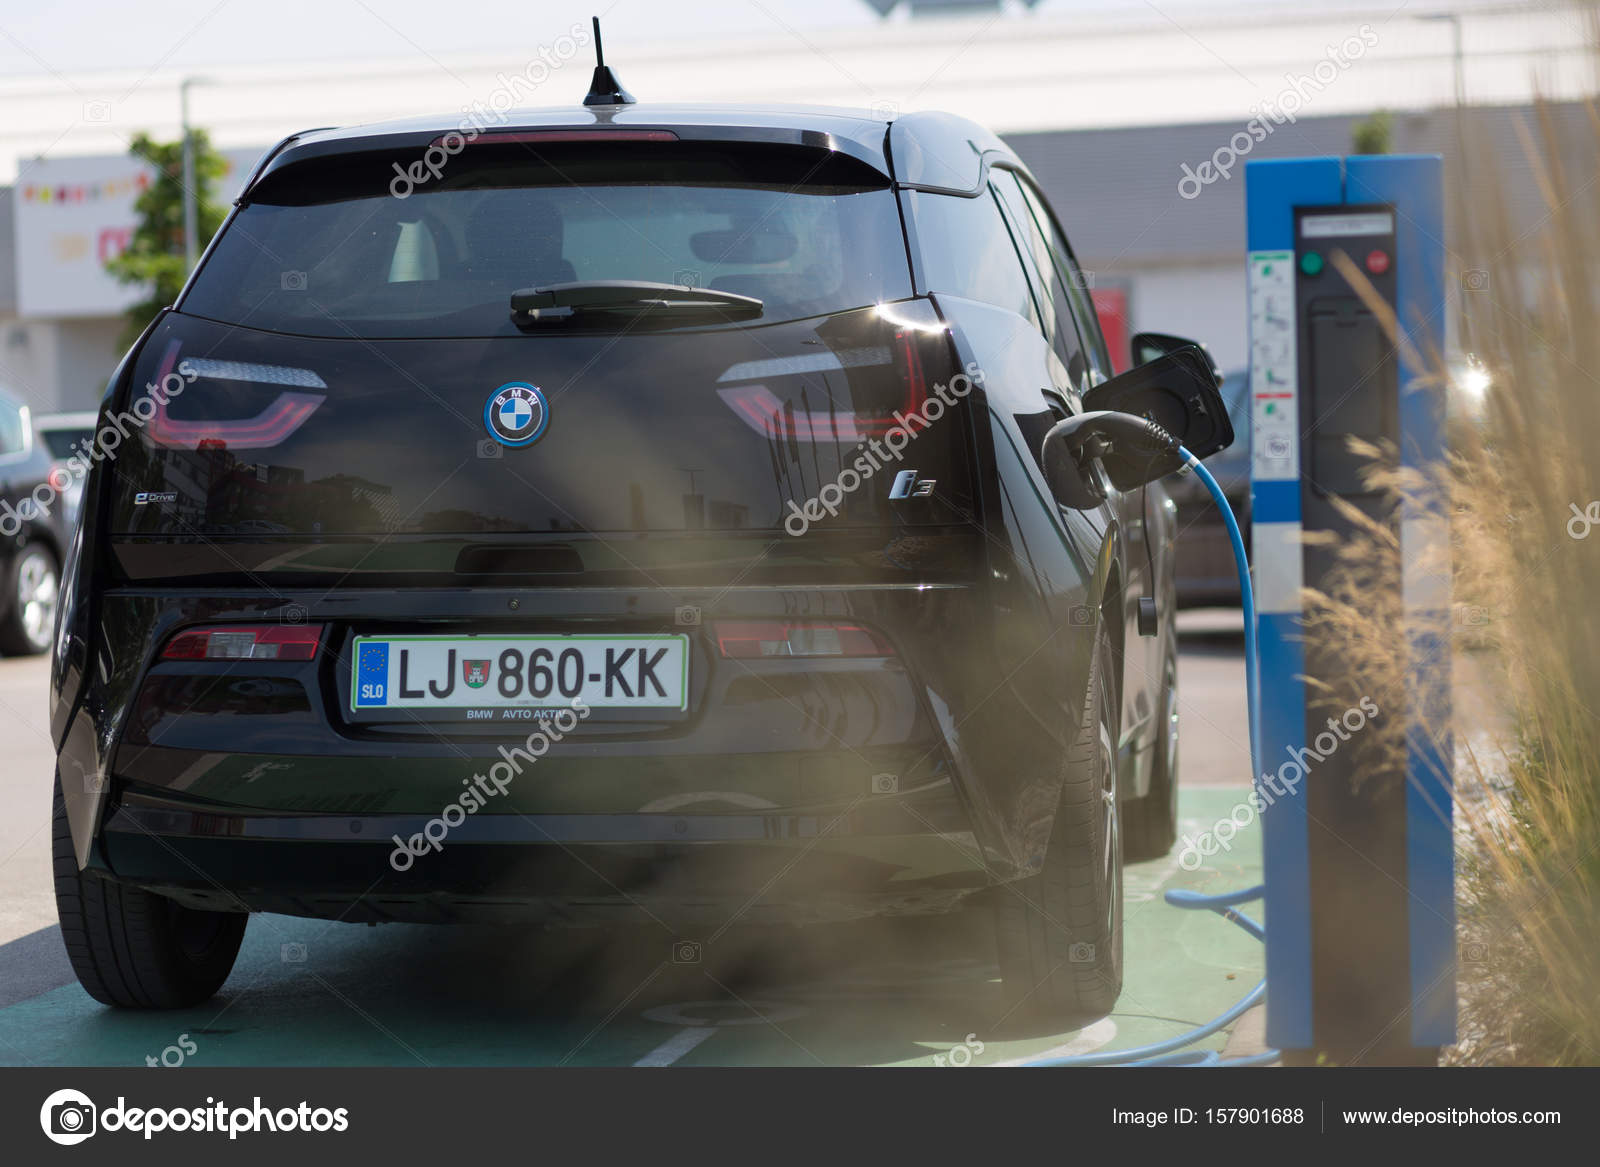 I3 Bmw Electric Car Being Charged At Electric Car Charging Station